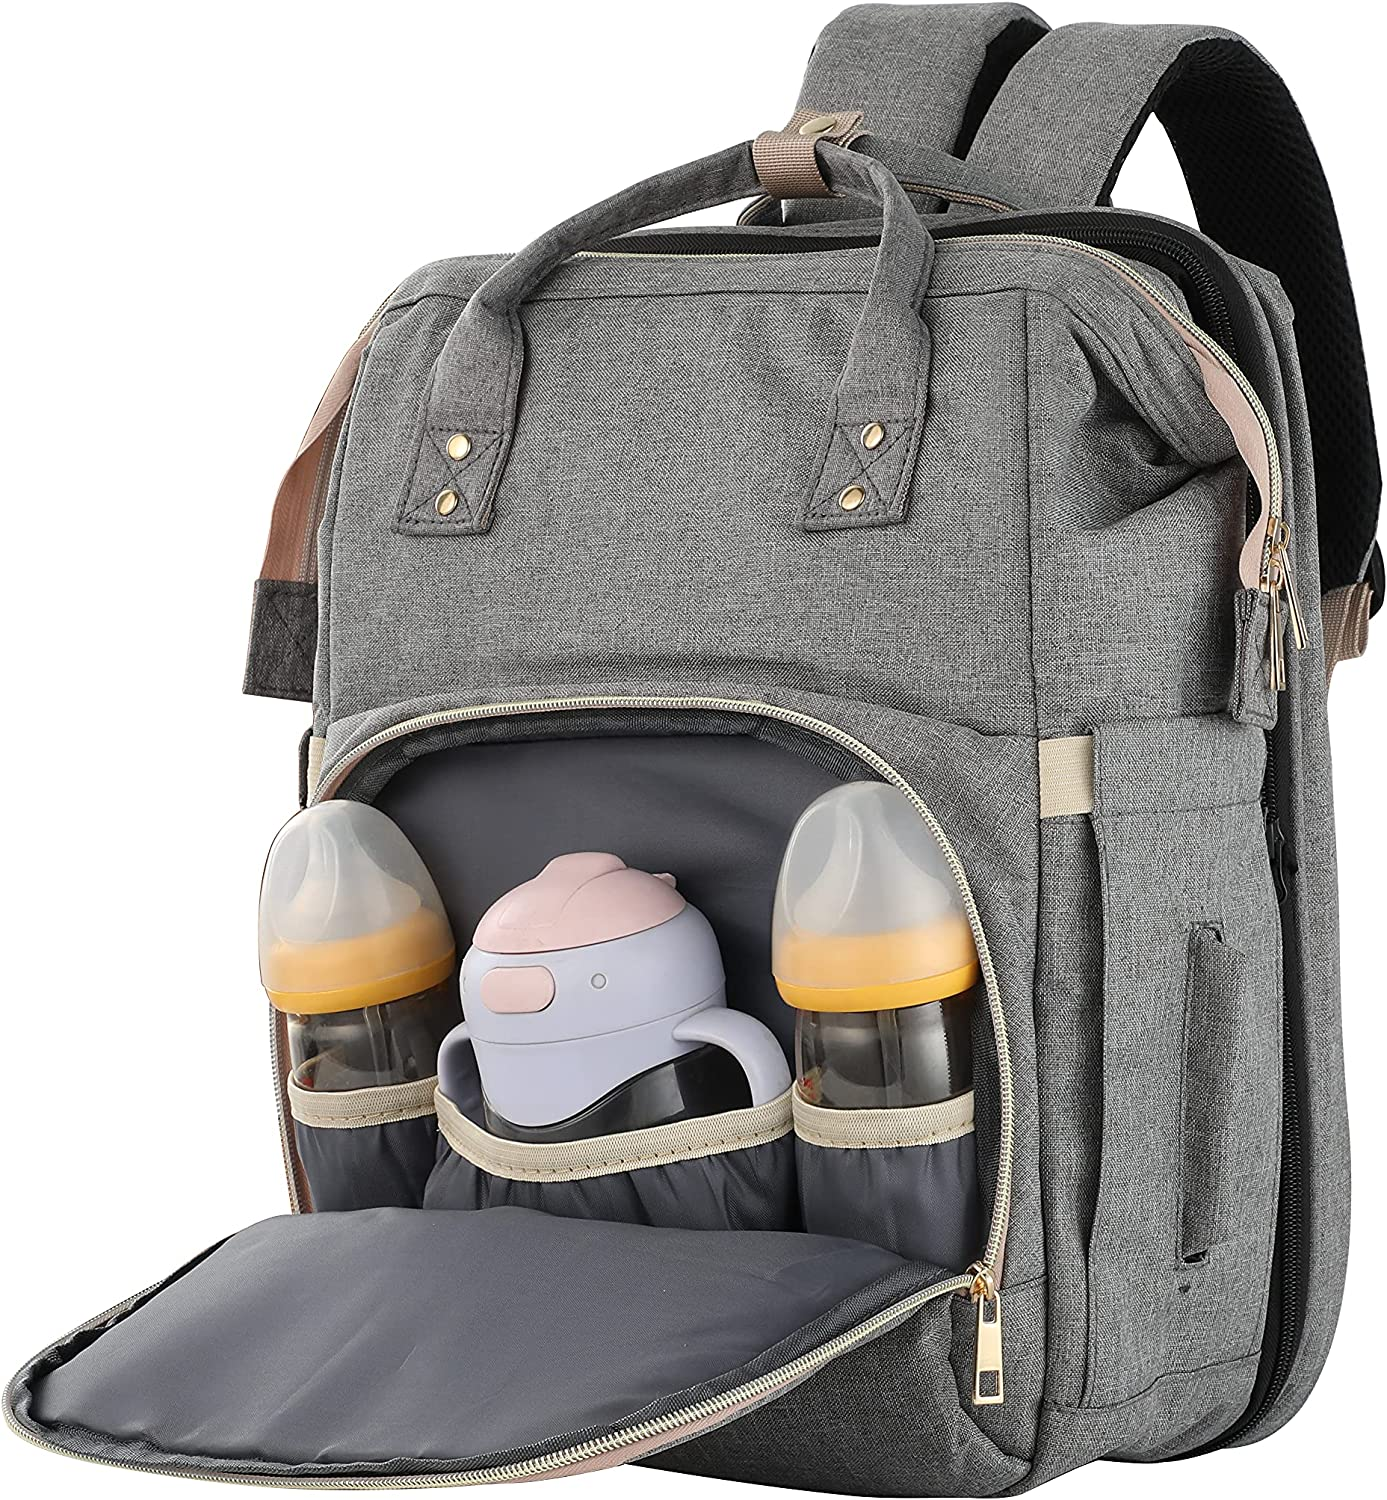 Diaper Bag with Expandable Changing Station for Baby, Large Capacity and Waterproof Fulfill Dad and Mom on Multi-Using for Boy and Girl Babies (Grey)